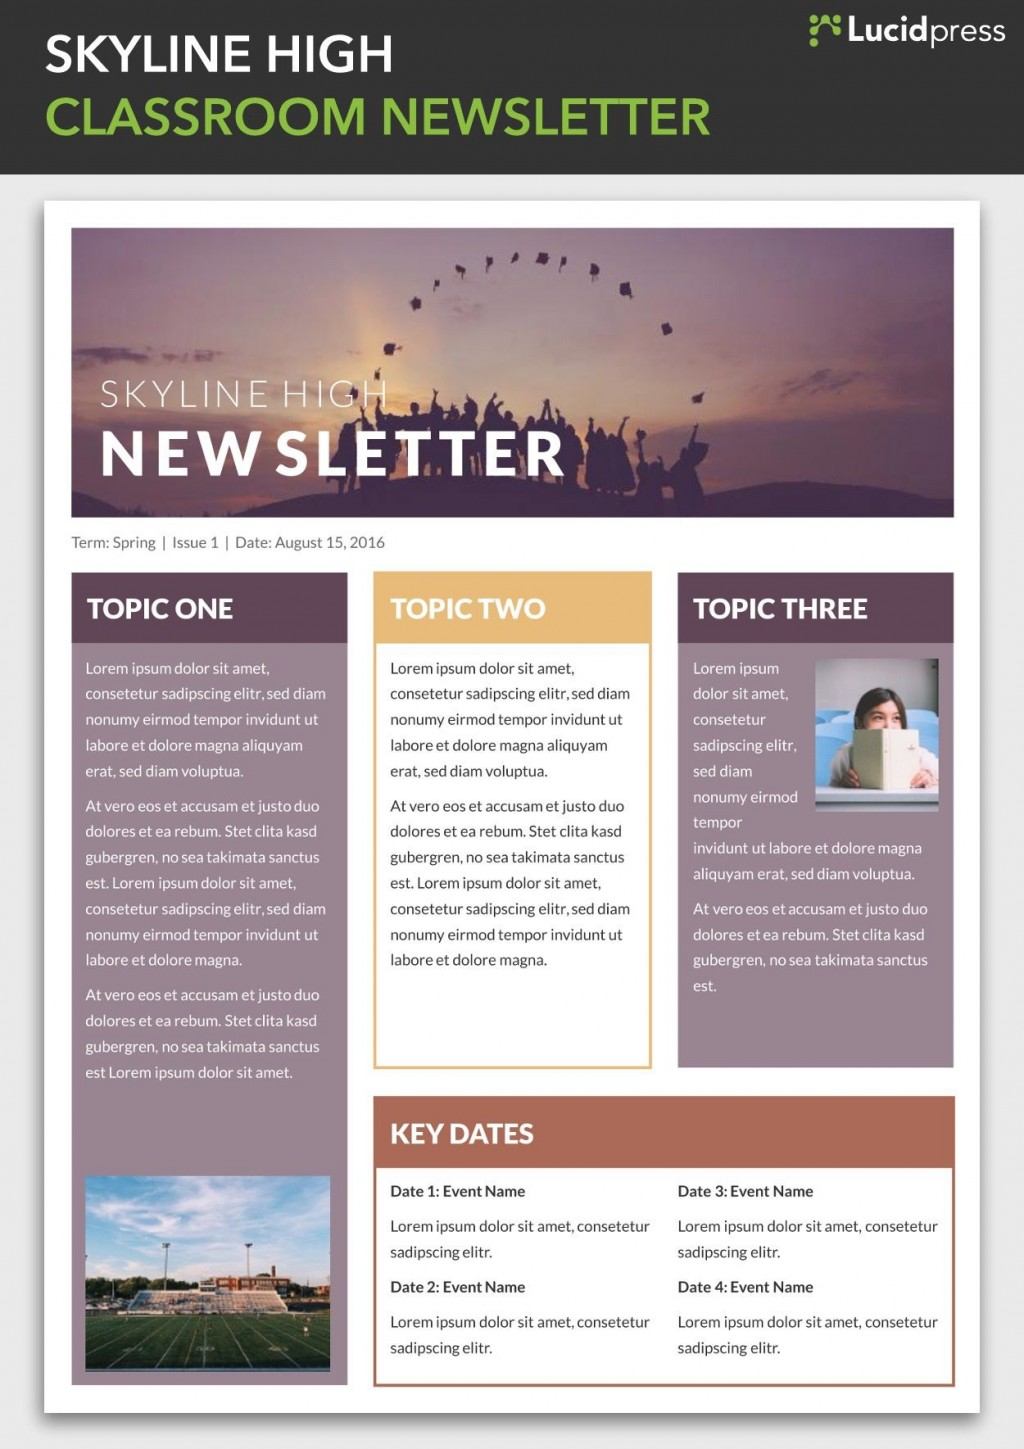 004 Simple School Newsletter Template Free Photo  Word Download CounselorLarge